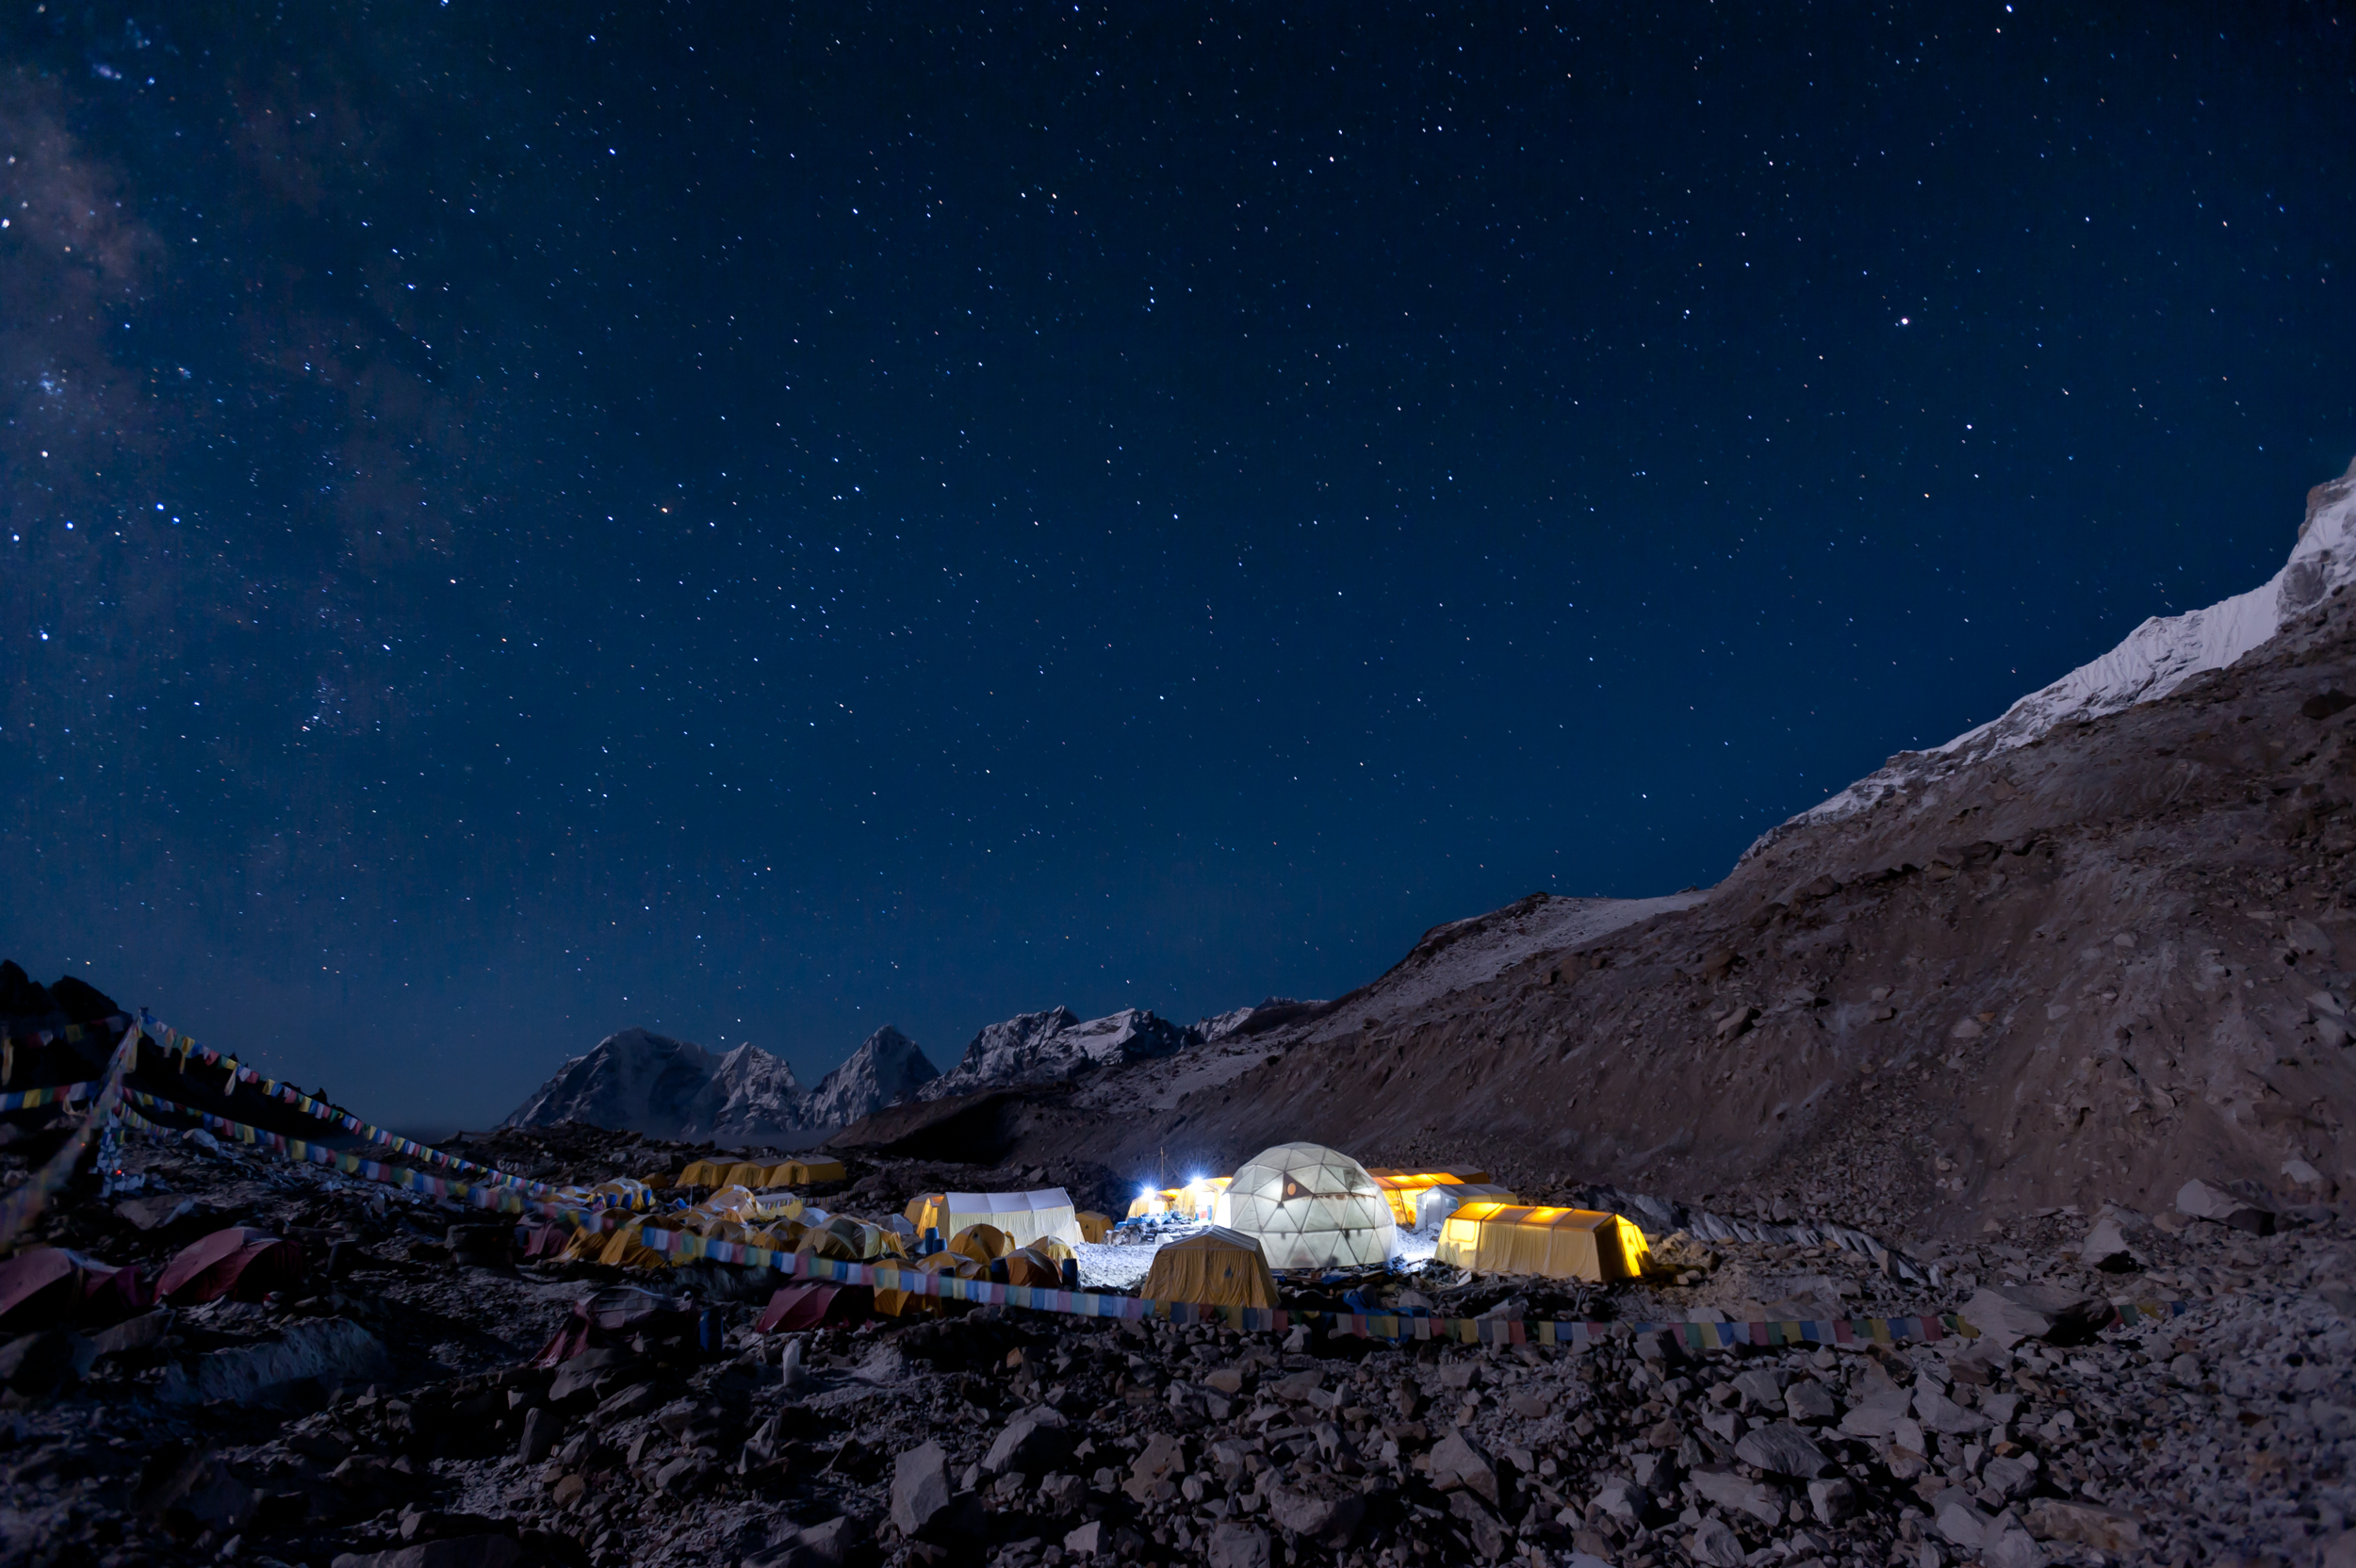 Climbers prepare to leave Everest base camp in the middle of the night for their summit attempt. The Milky Way is visible above the Khumbu glacier.